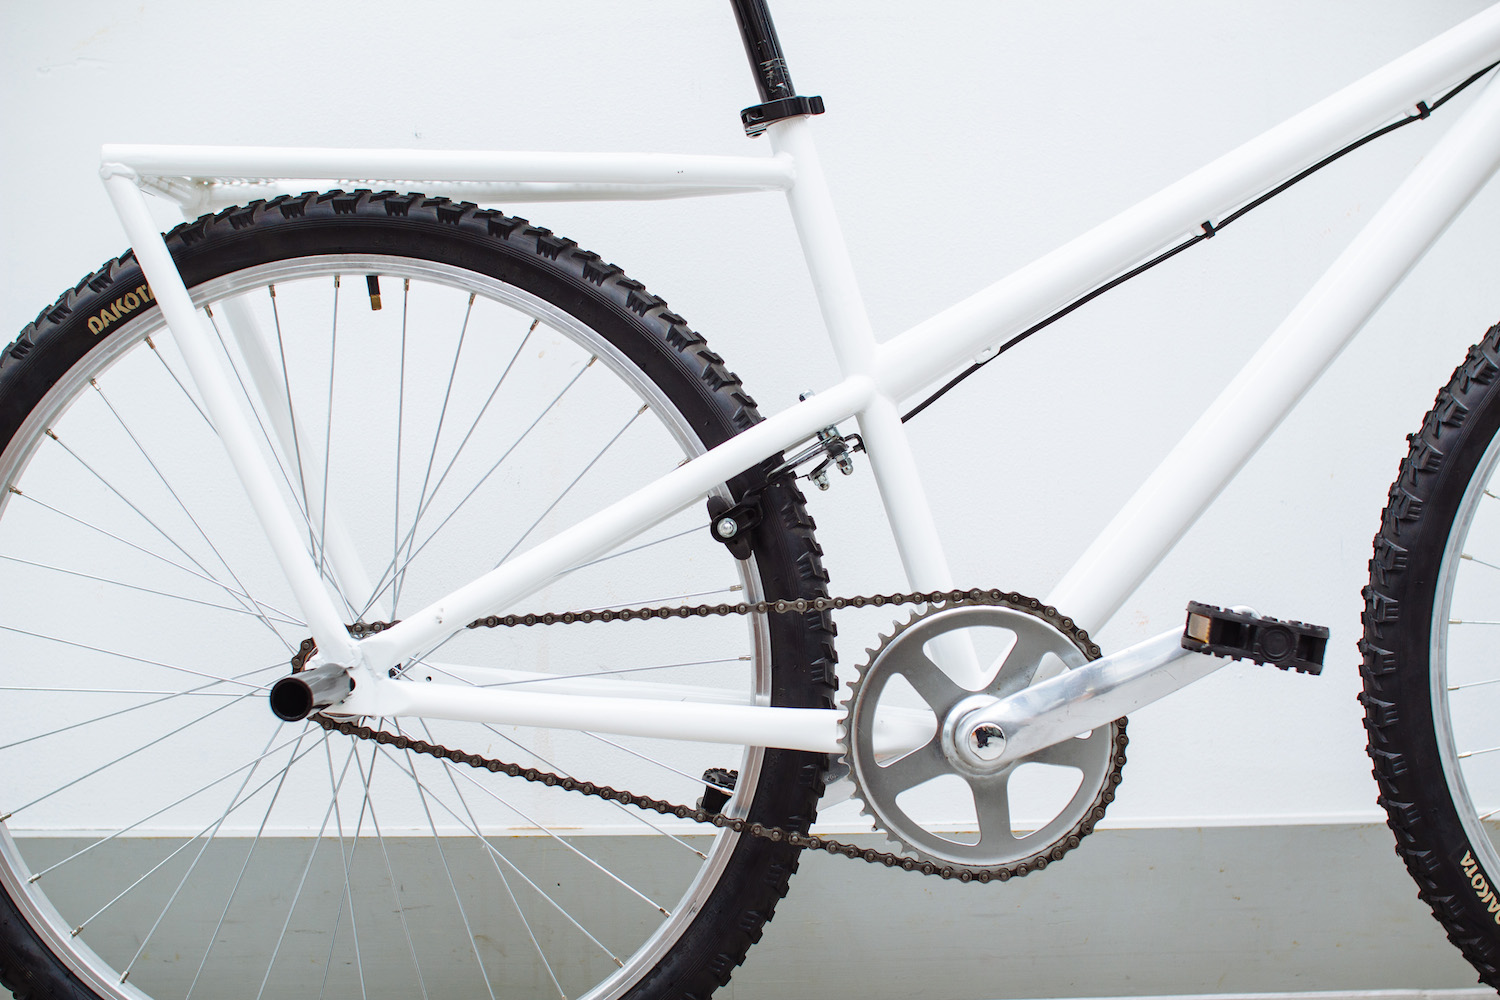 The downhill style frame makes the overall frame more masculine